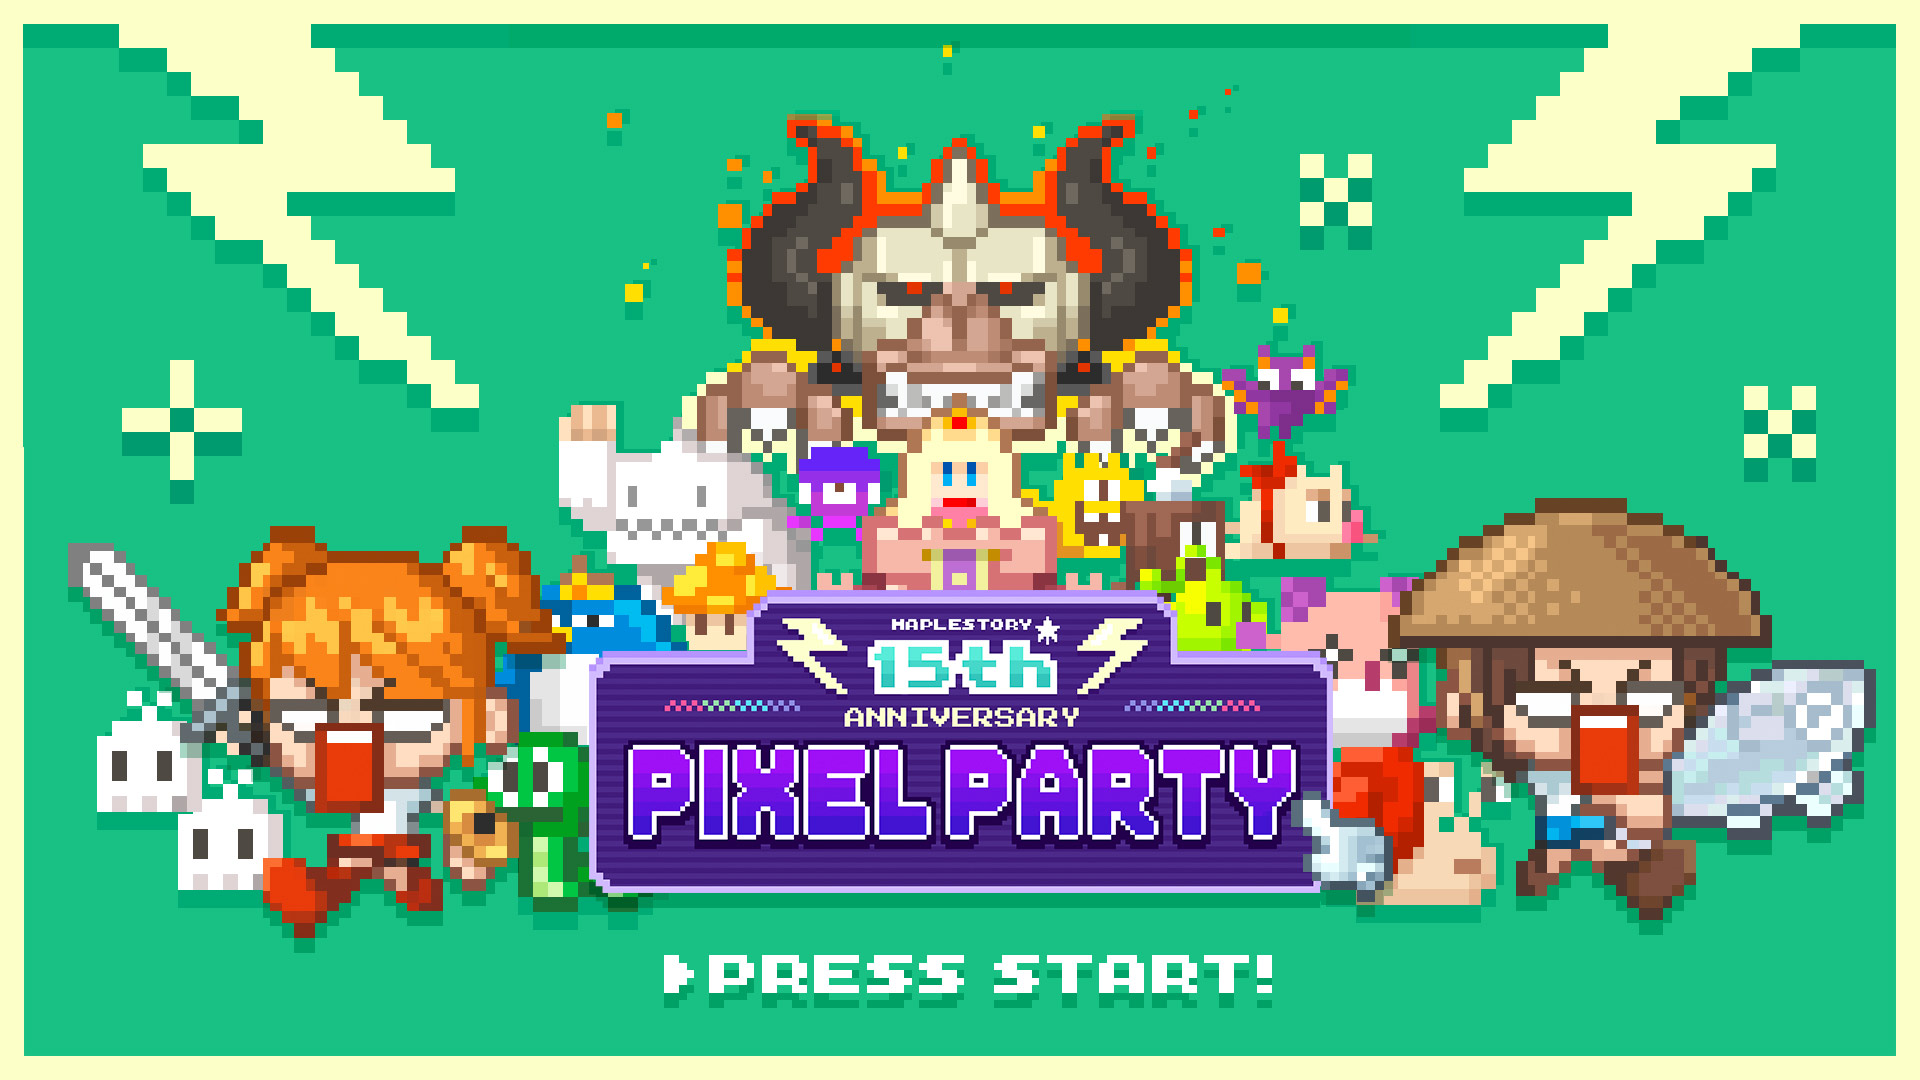 15th Anniversary Pixel Party